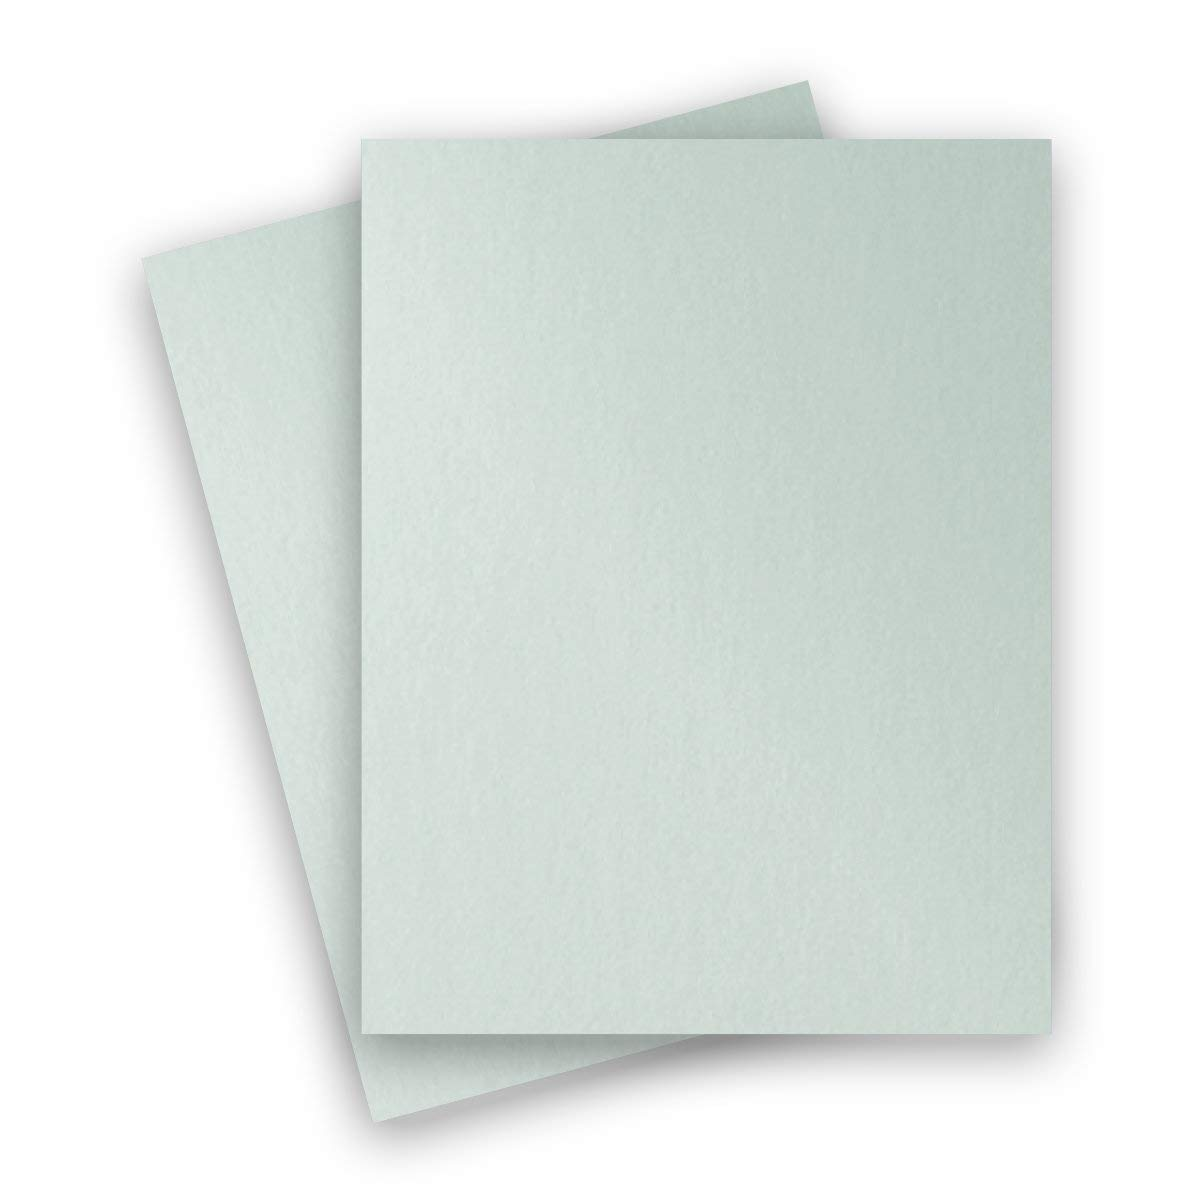 81lb Text Crafters and DIY Projects Metallic Rose Quartz 8-1//2-x-11 Lightweight Multi-use Paper 25-pk Professionals Designers Letter size Everyday Metallic Paper PaperPapers 120 GSM